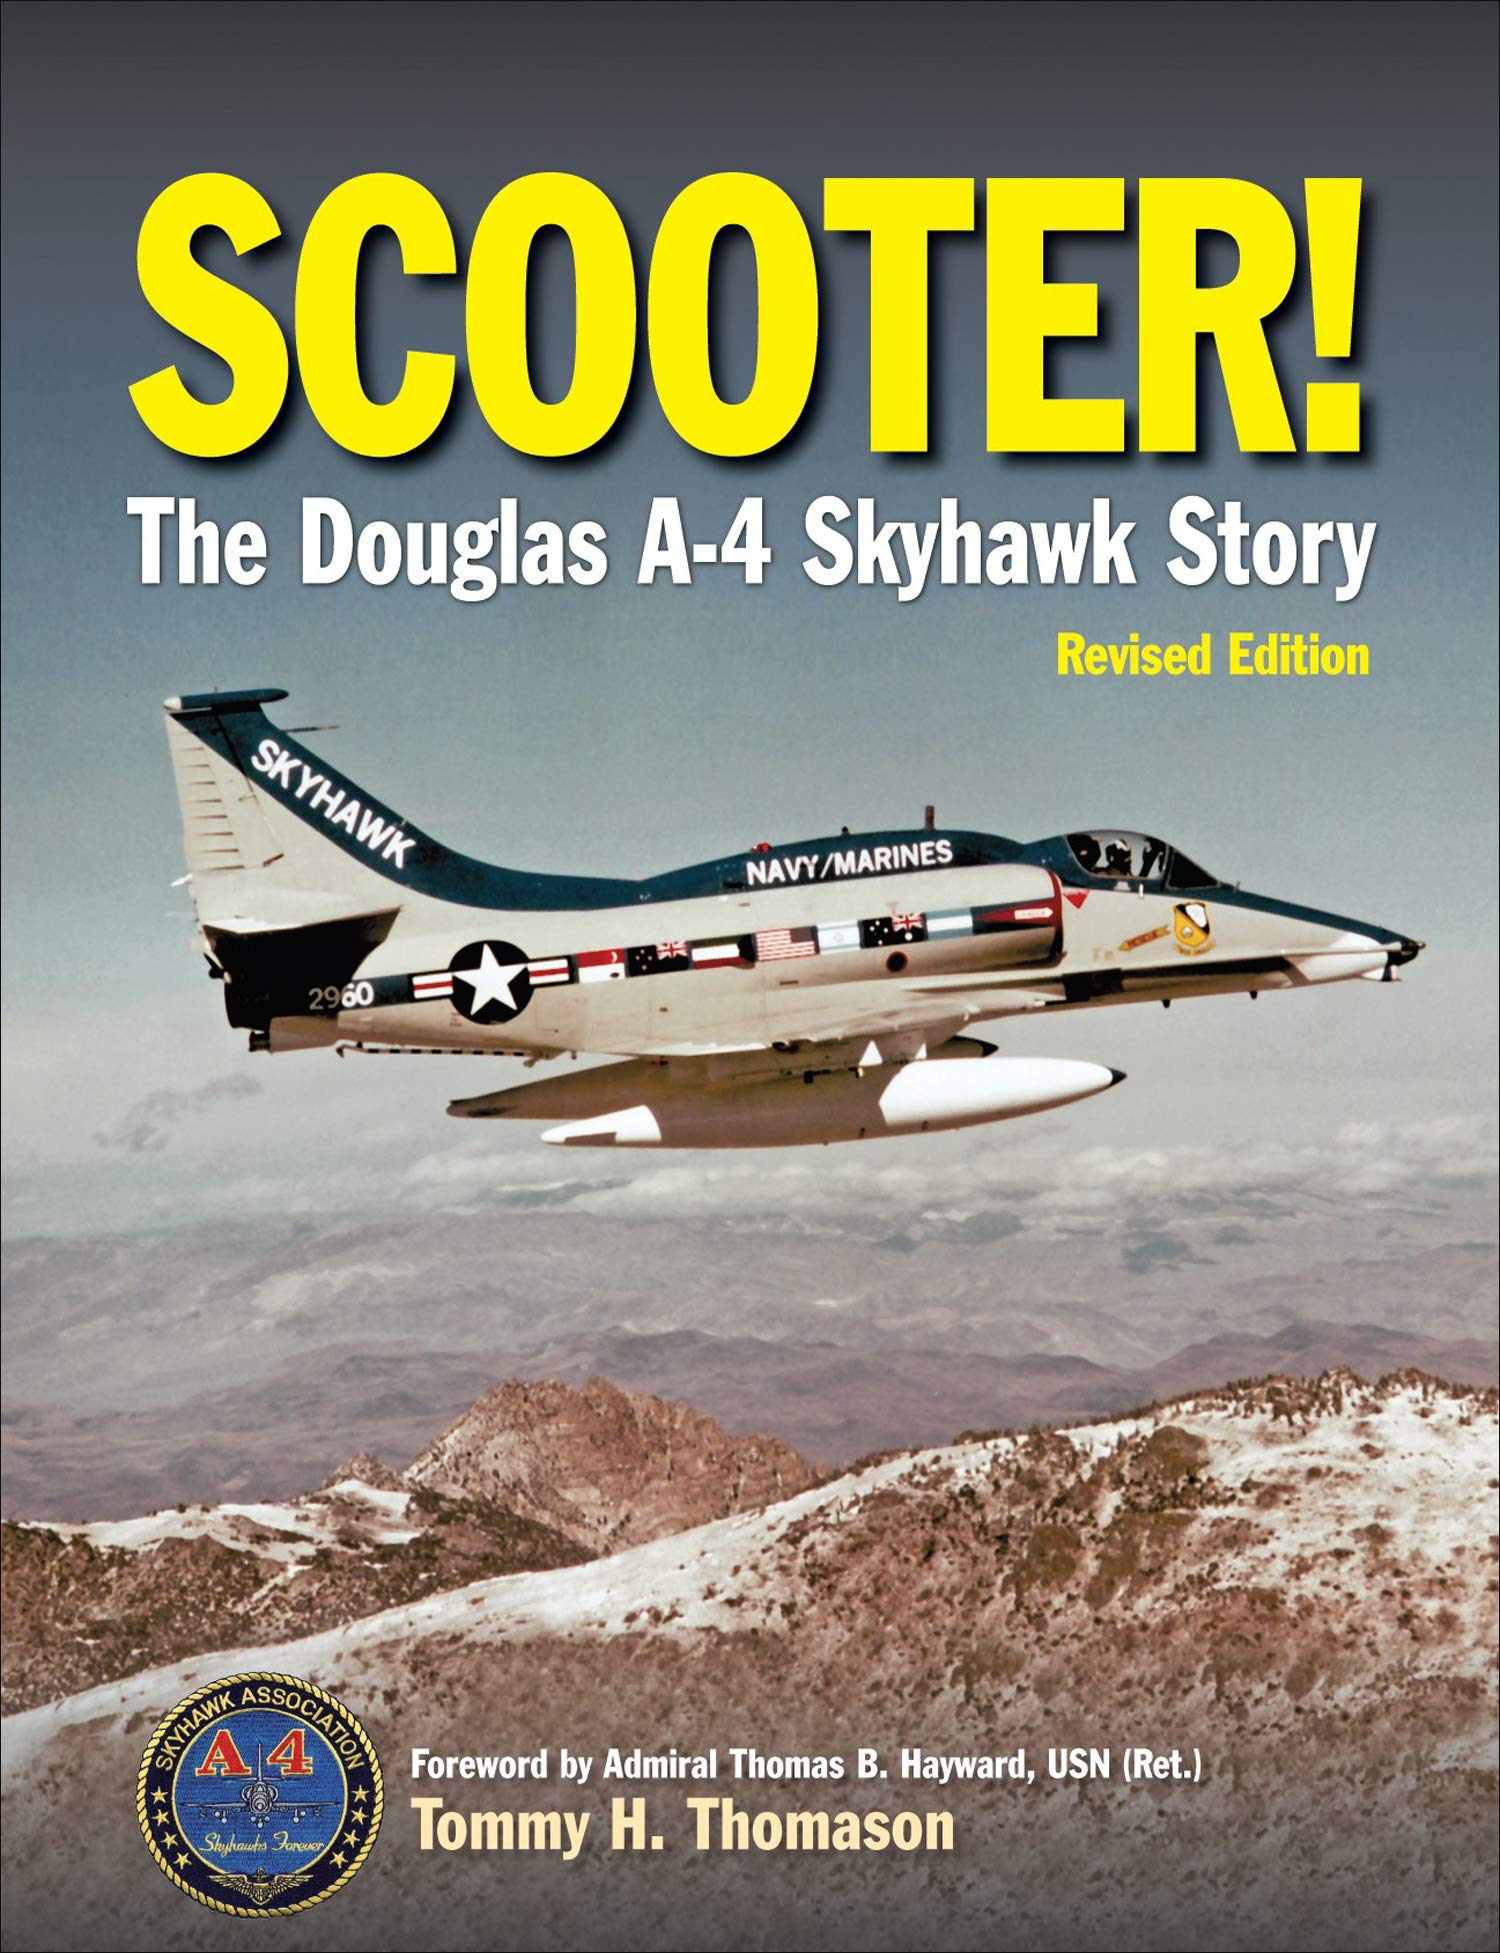 Scooter!: The Douglas A-4 Skyhawk Story by Crecy Publishing